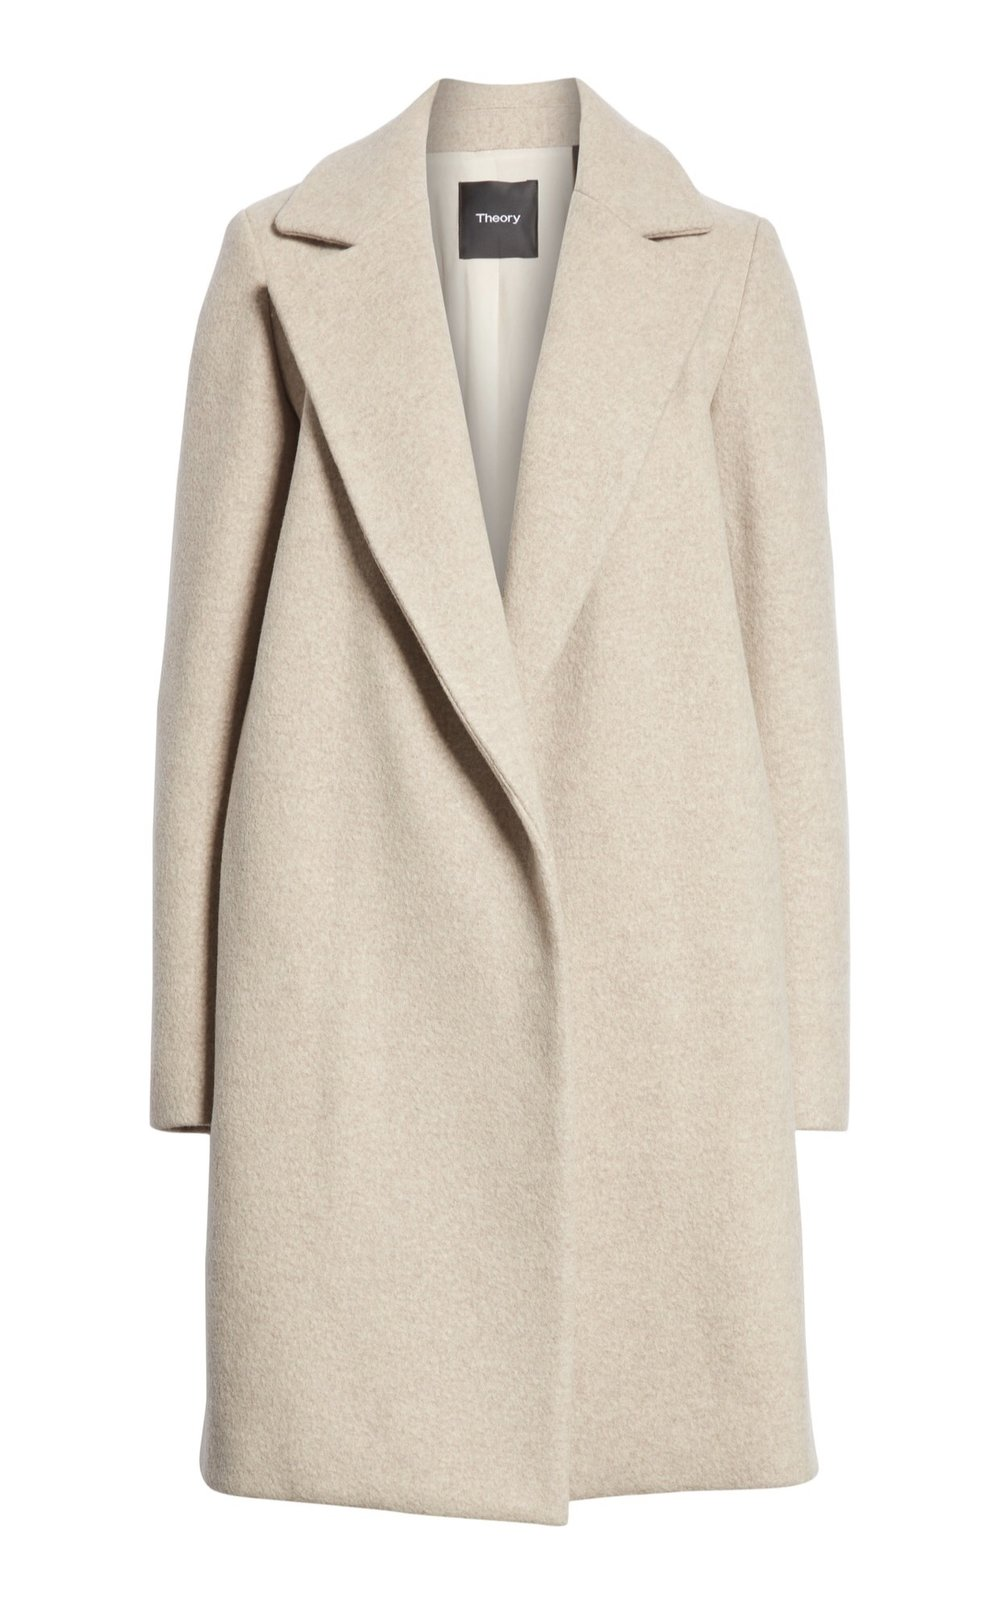 Theory 'Clairene Hawthorne' Wool Cashmere Coat {$397.90} - After sale: $595